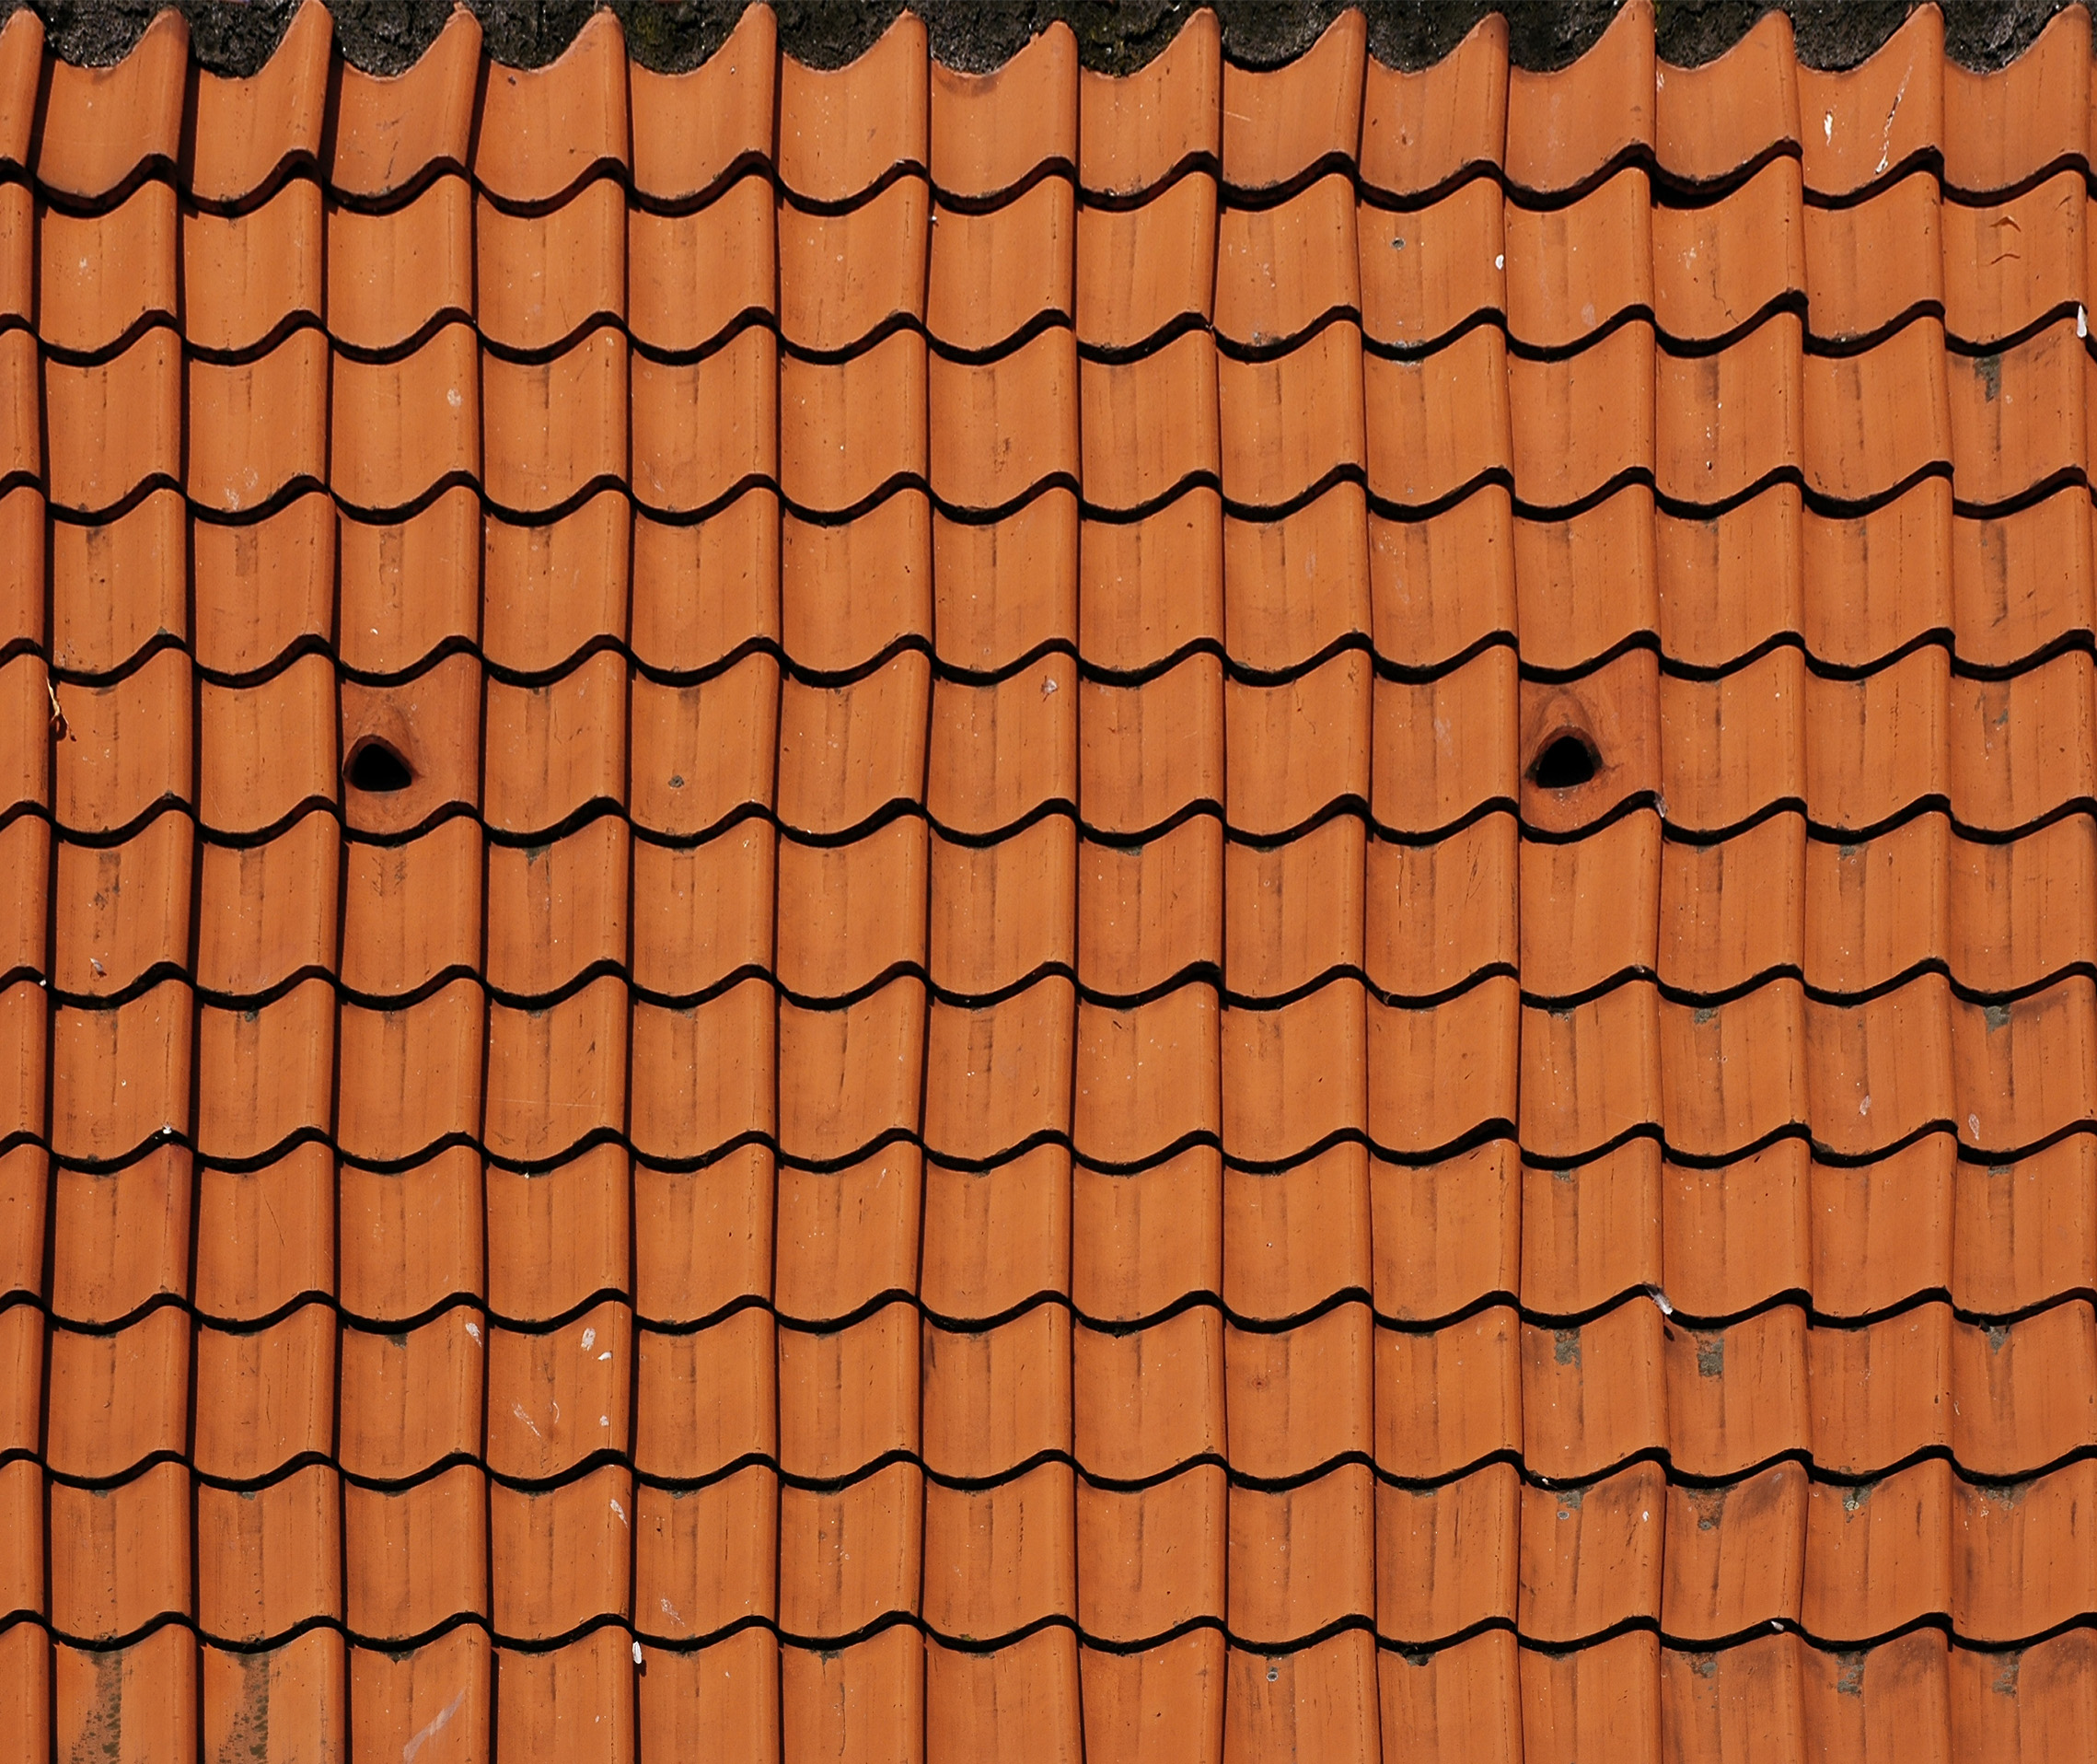 Tile Roof Background Clipart 20 Free Cliparts Download